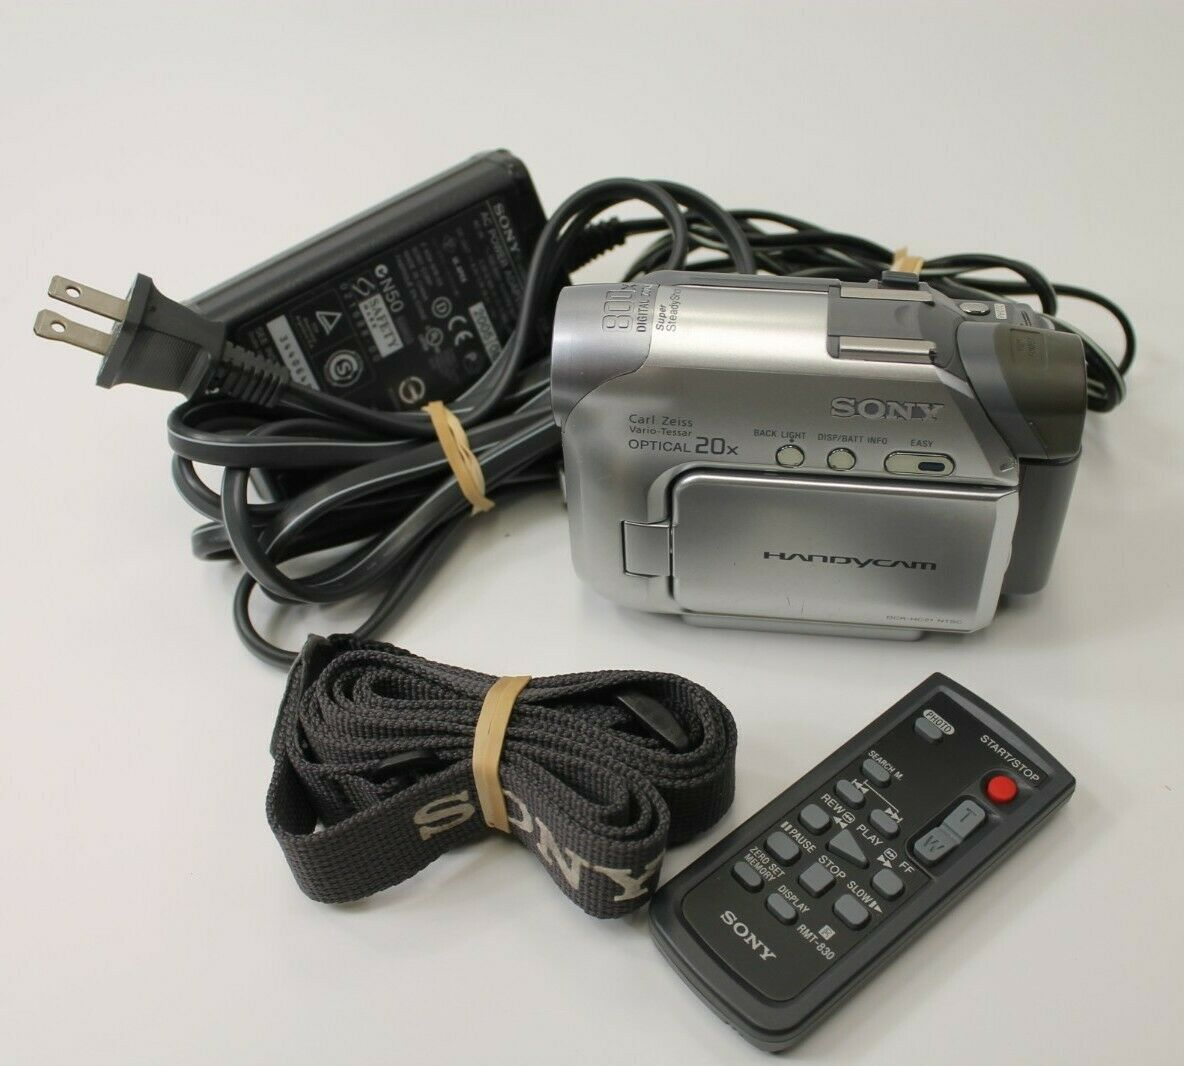 Sony Handycam DCR-HC21 Digital Video Mini DV Camcorder Cords/Remote/strap TESTED - $89.99